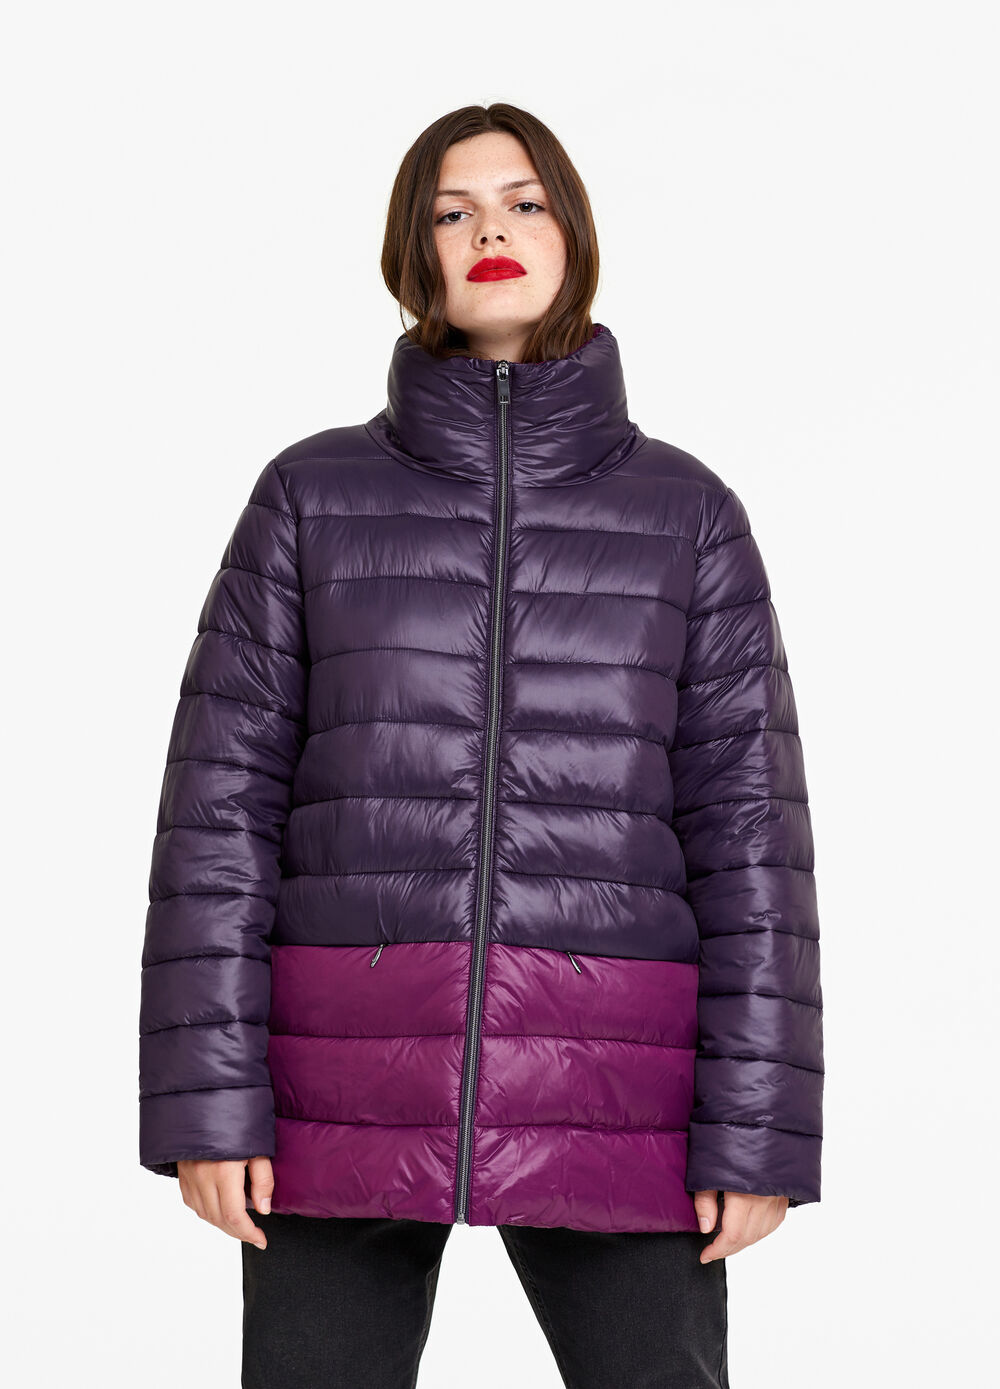 Curvy ultralight two-tone down jacket